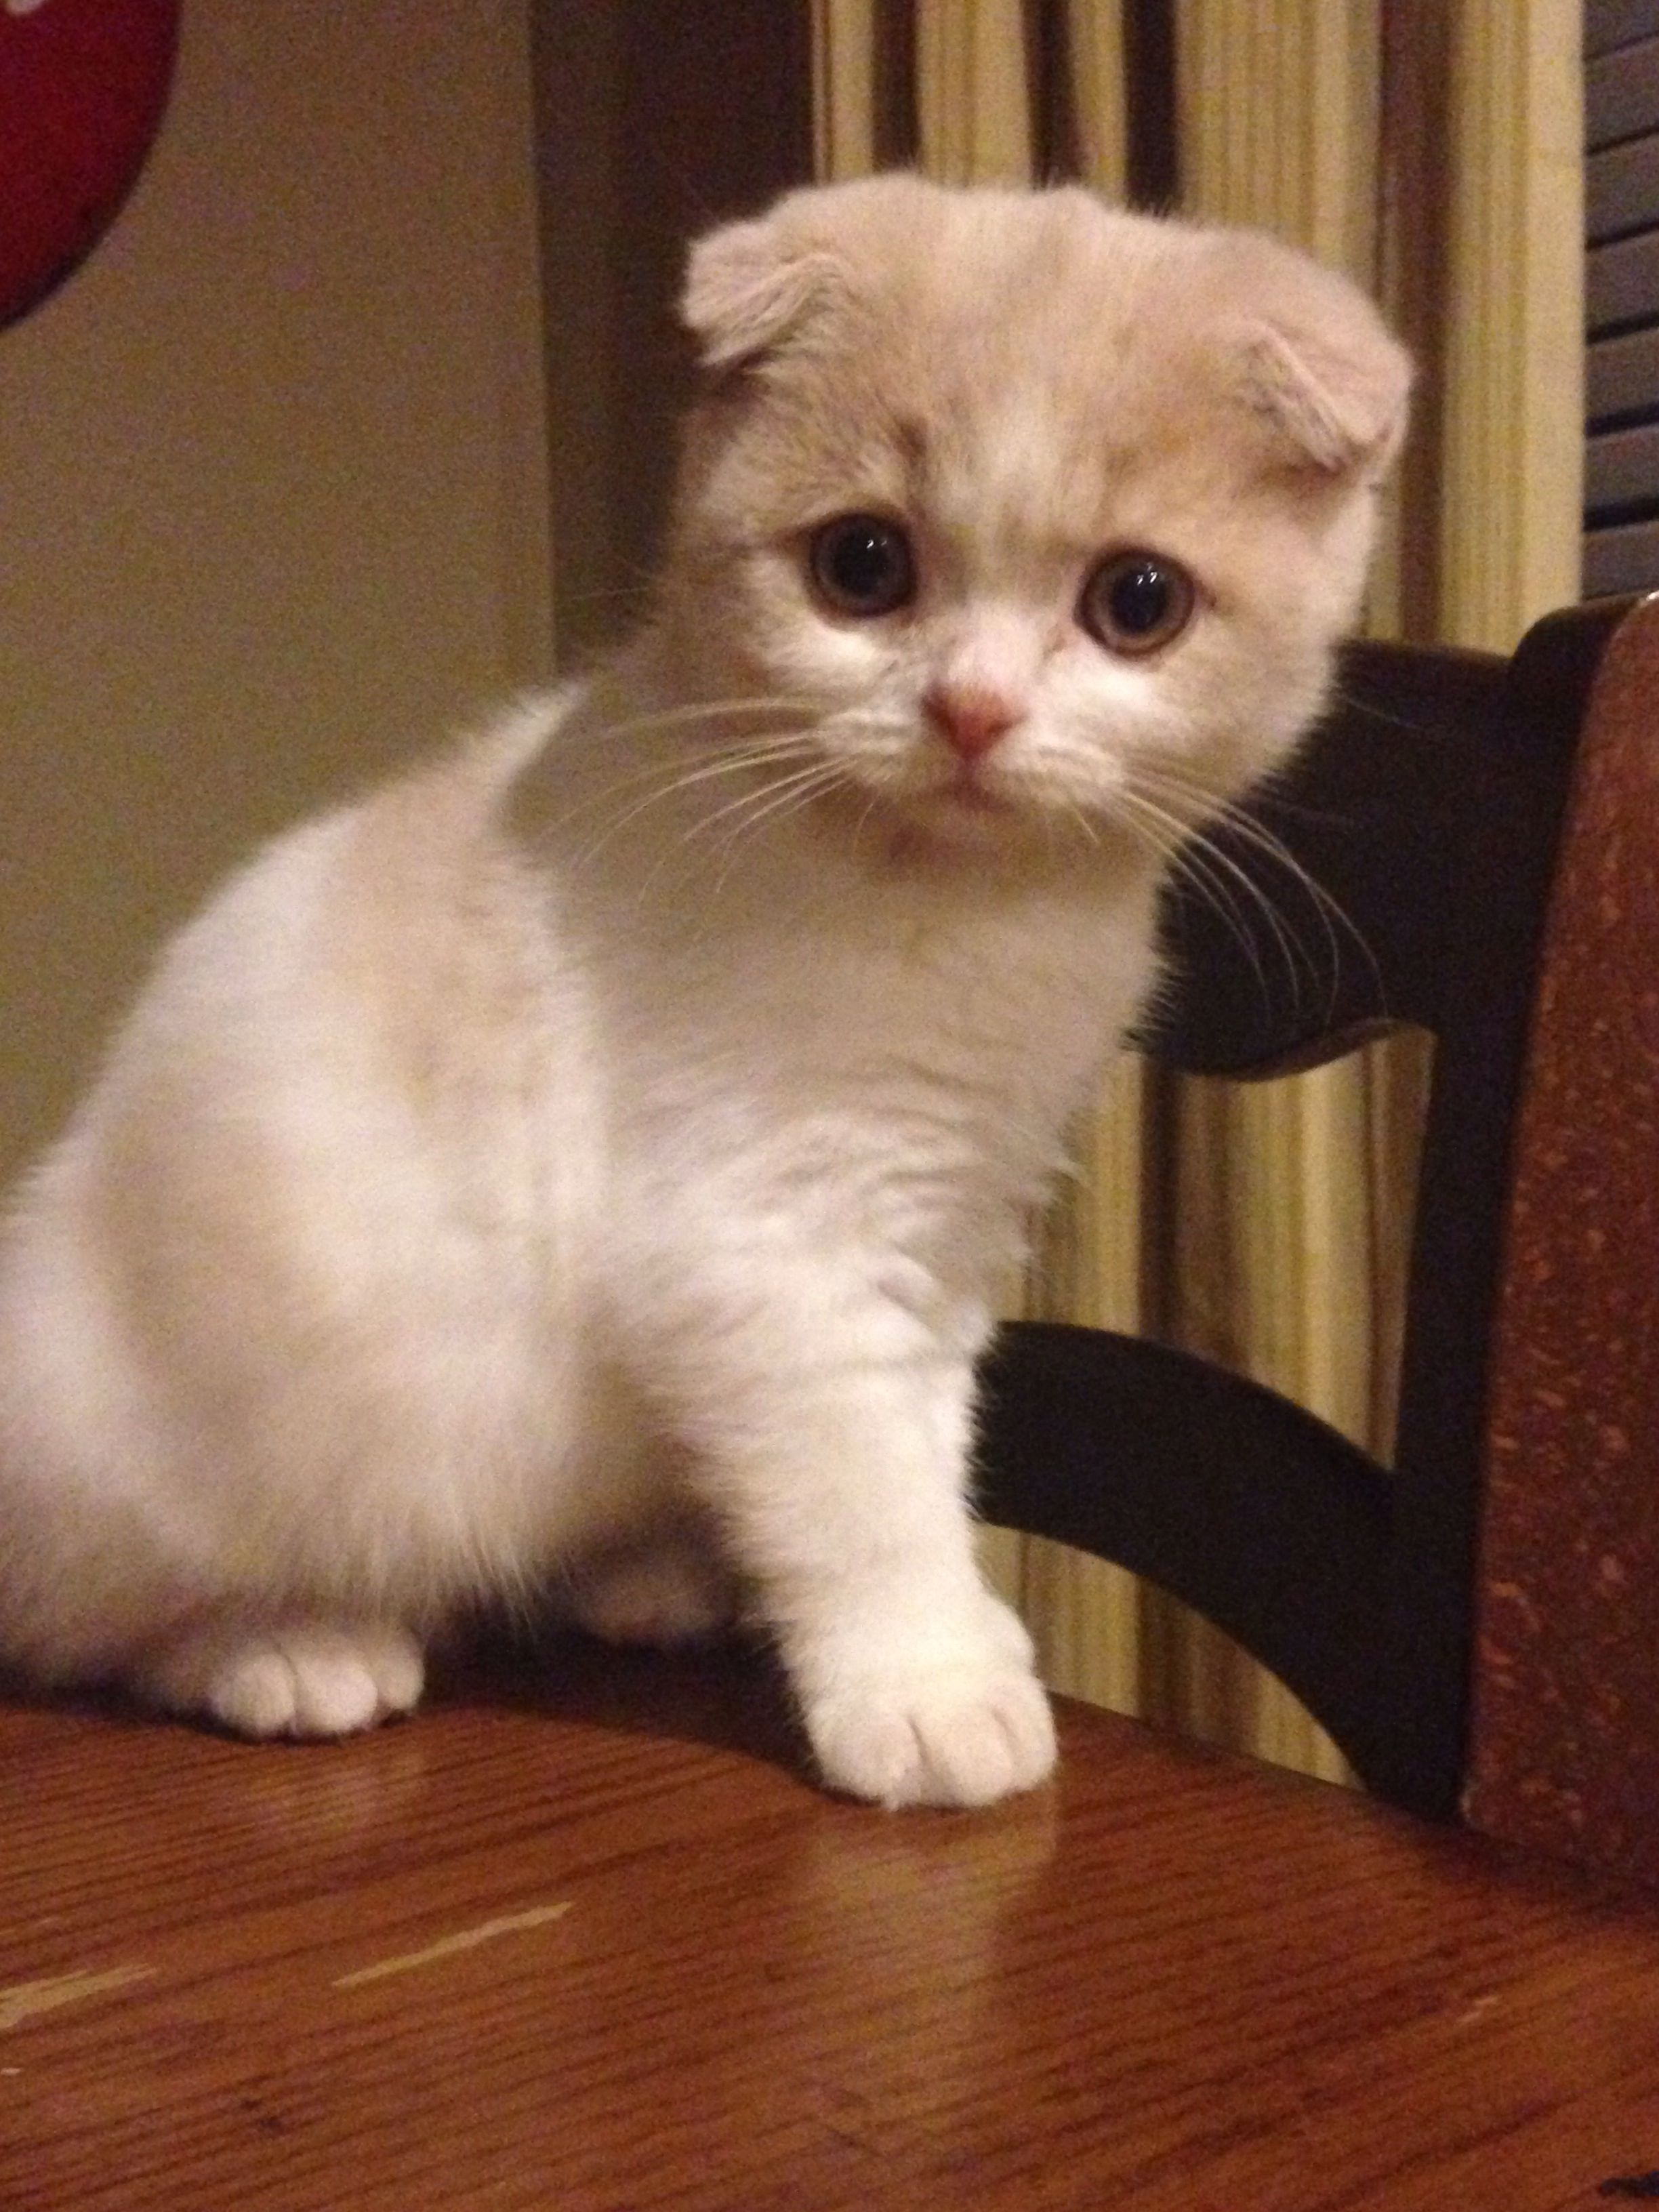 scottish fold kitten Scottish fold kittens, Munchkin cat